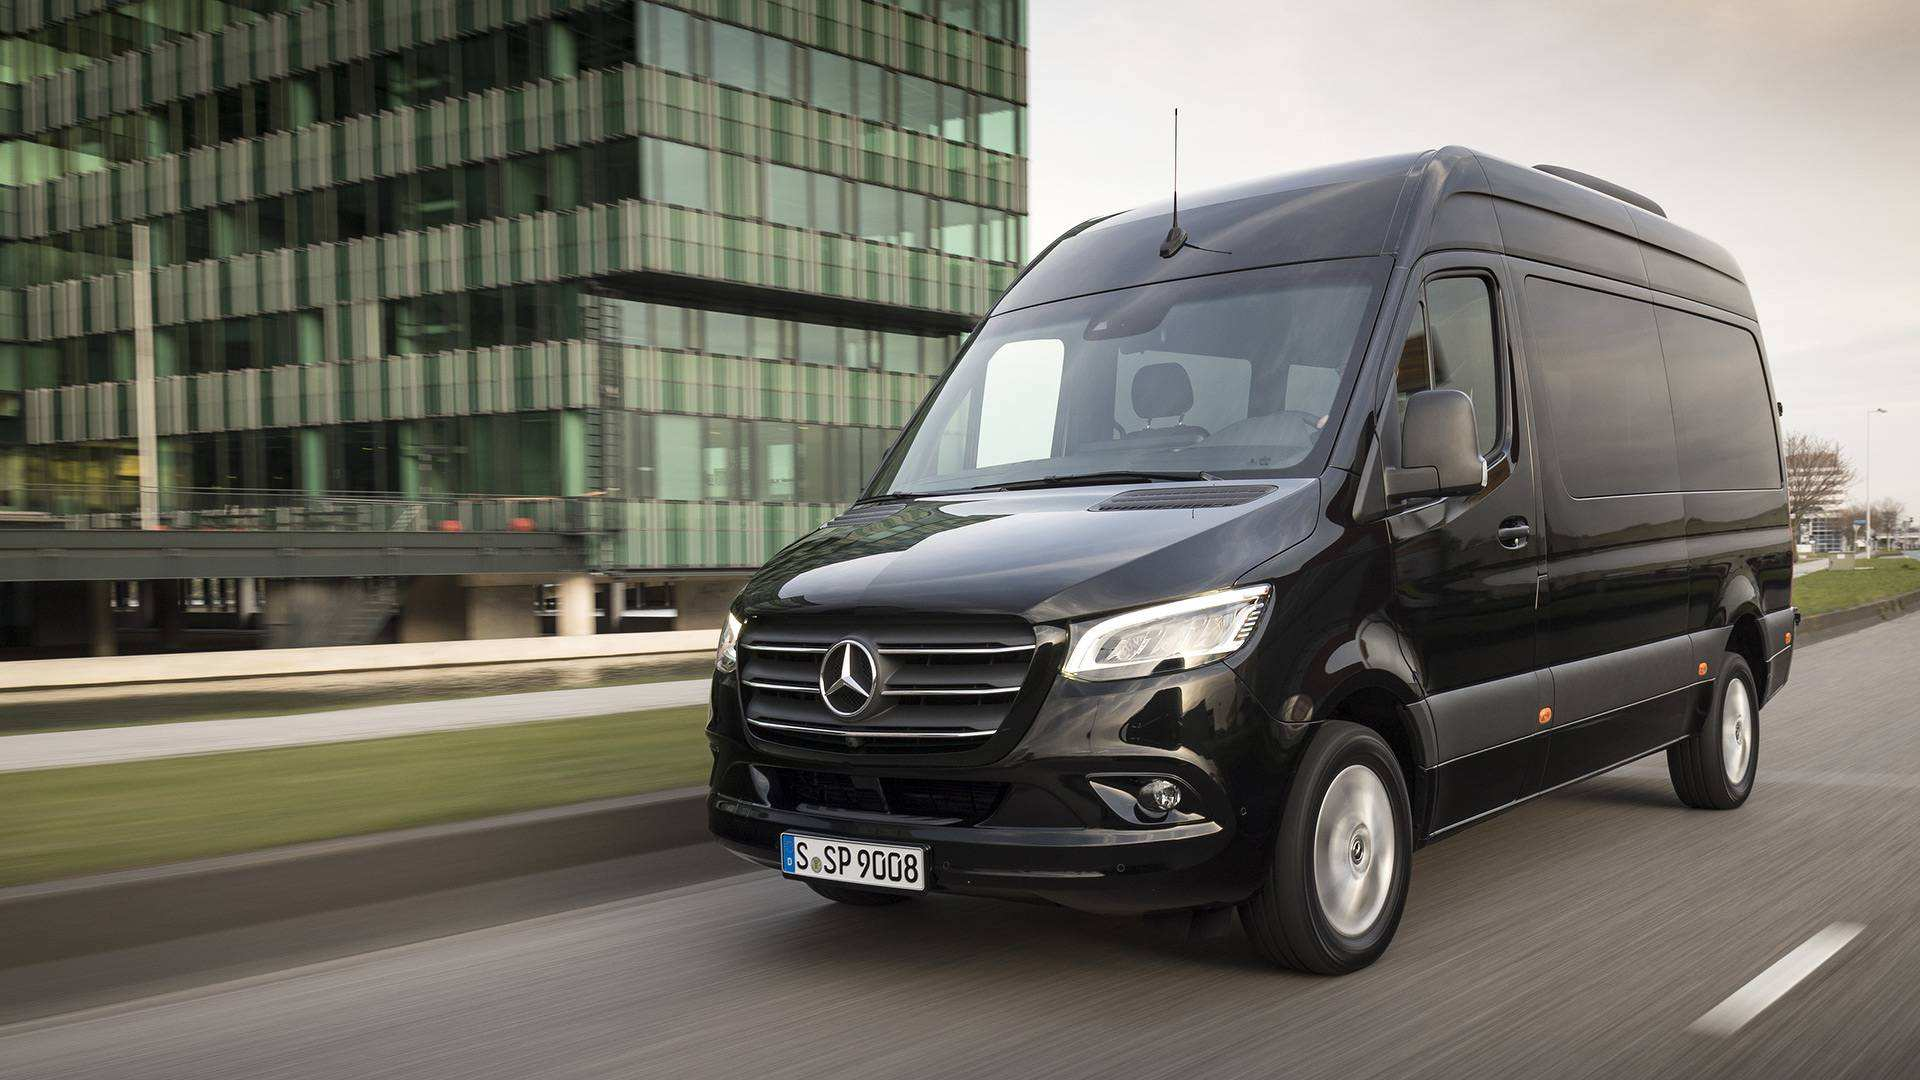 17 All New 2020 Mercedes Van New Concept by 2020 Mercedes Van